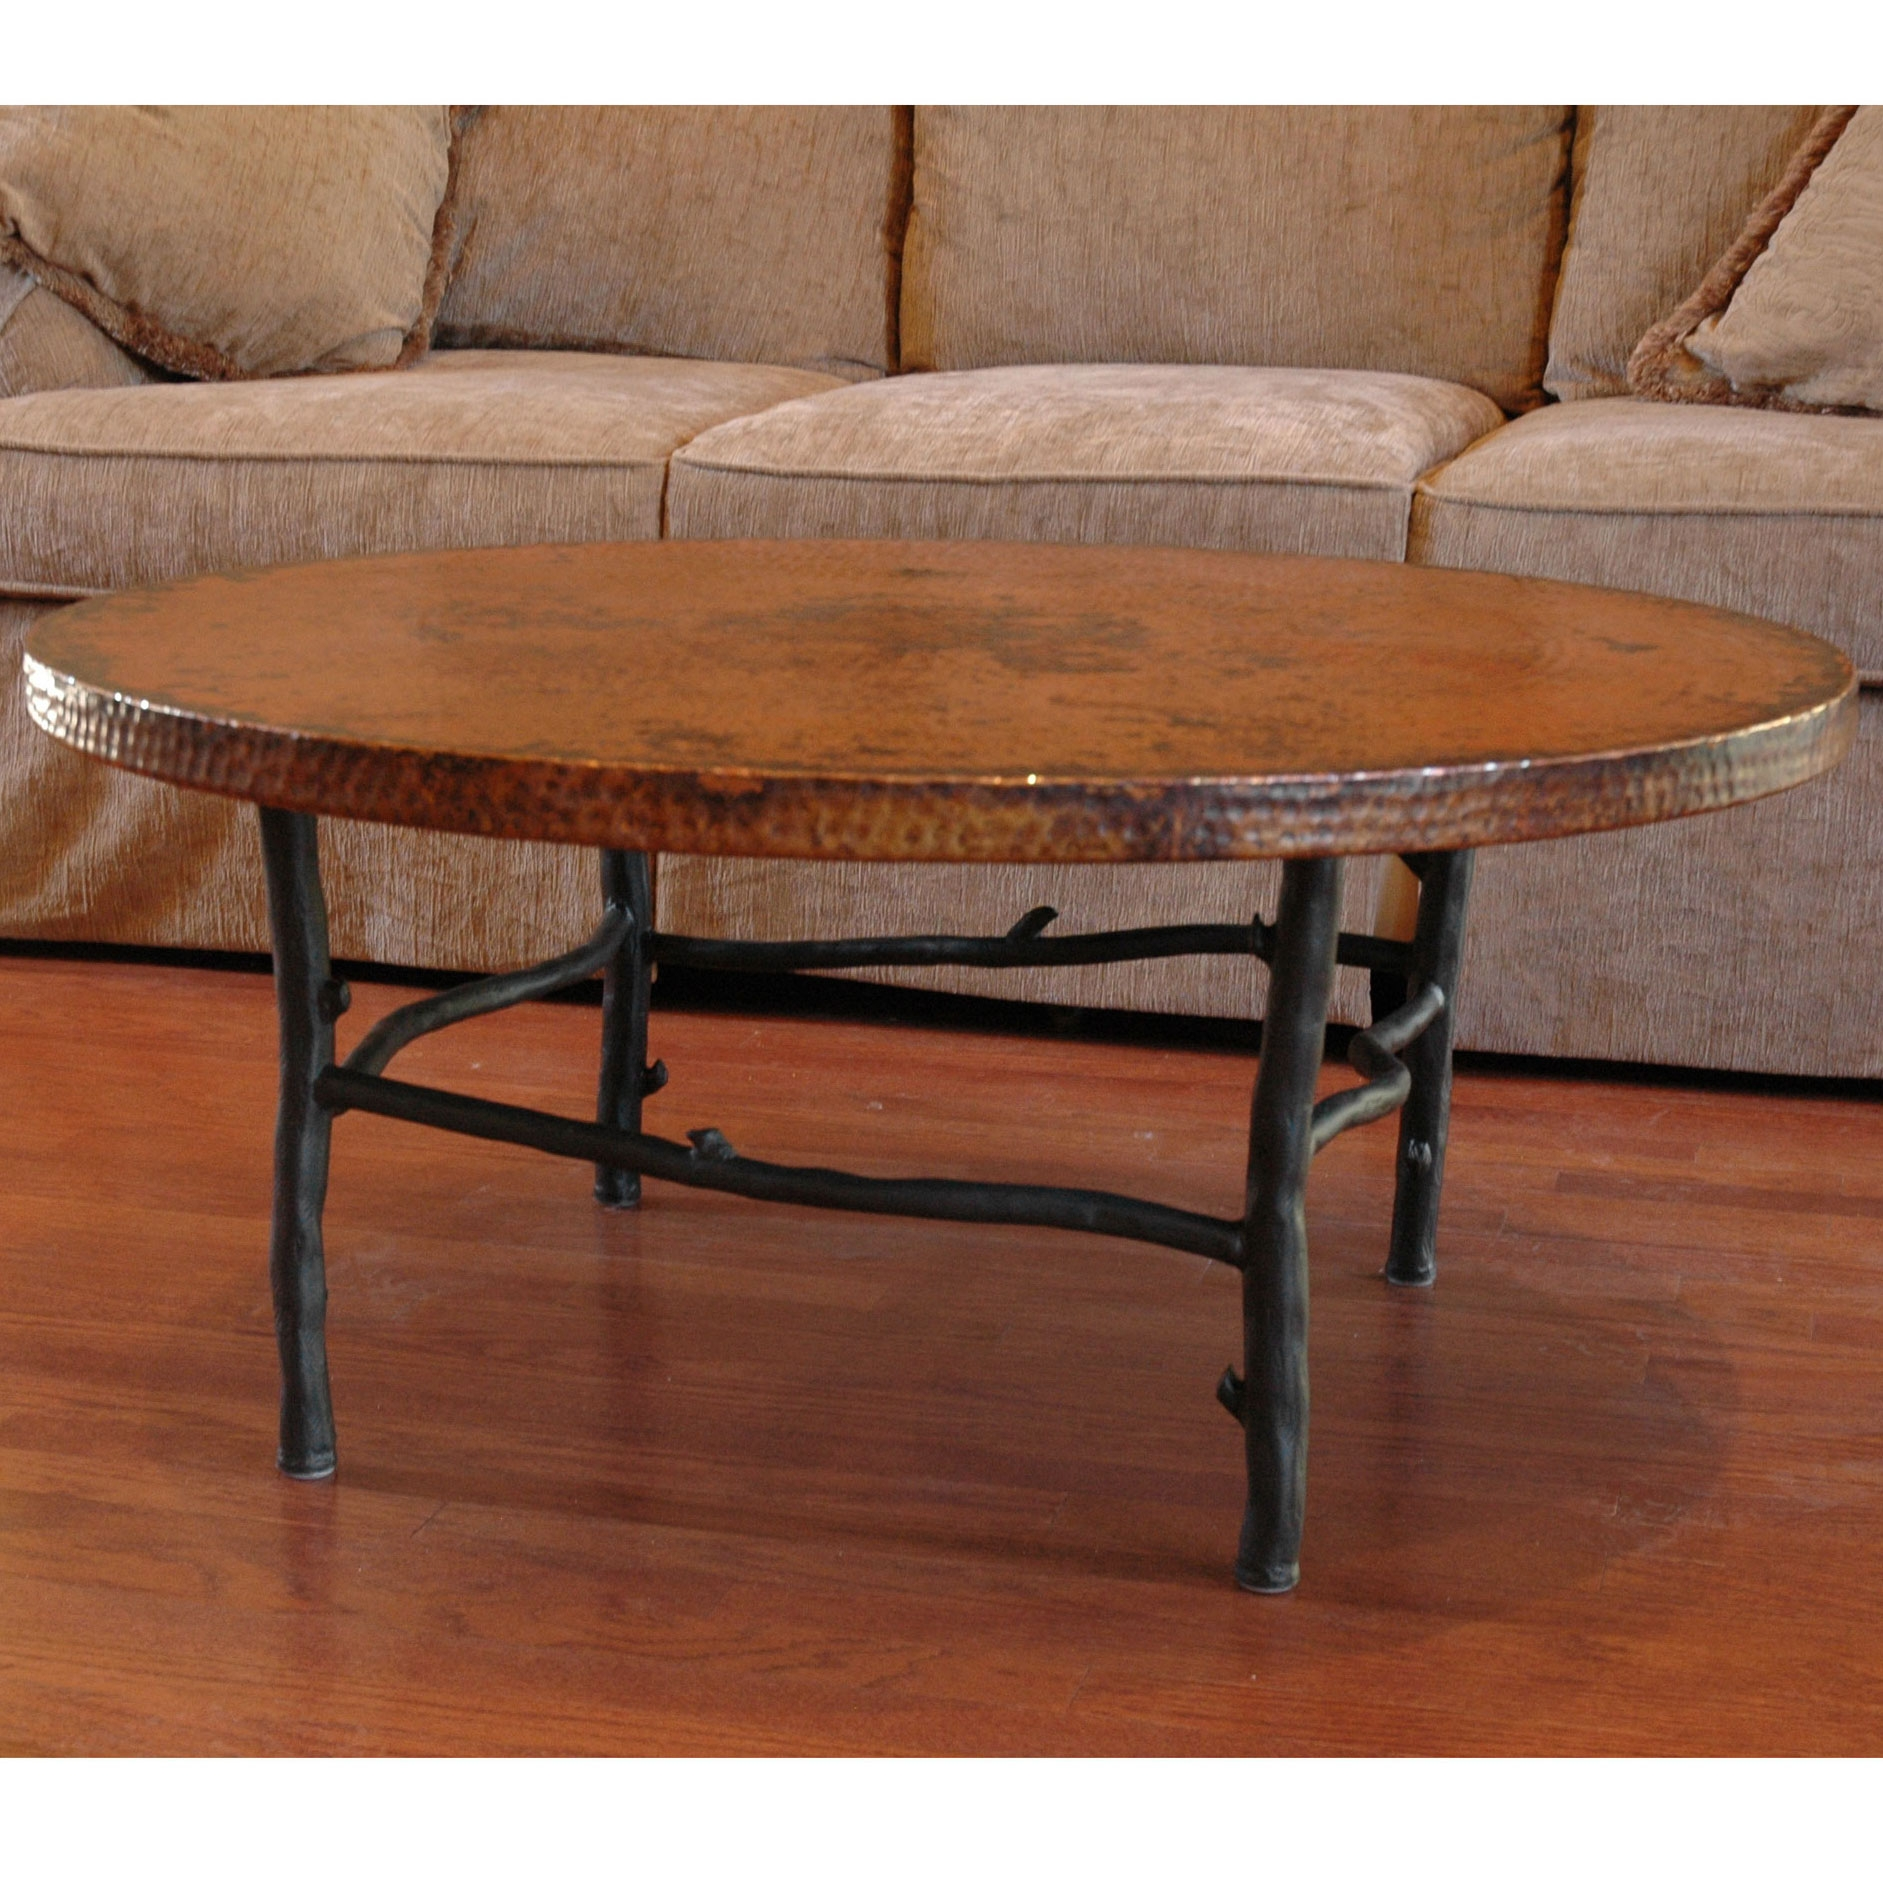 Rustic South Fork Wrought Iron Coffee Table 42inches Round